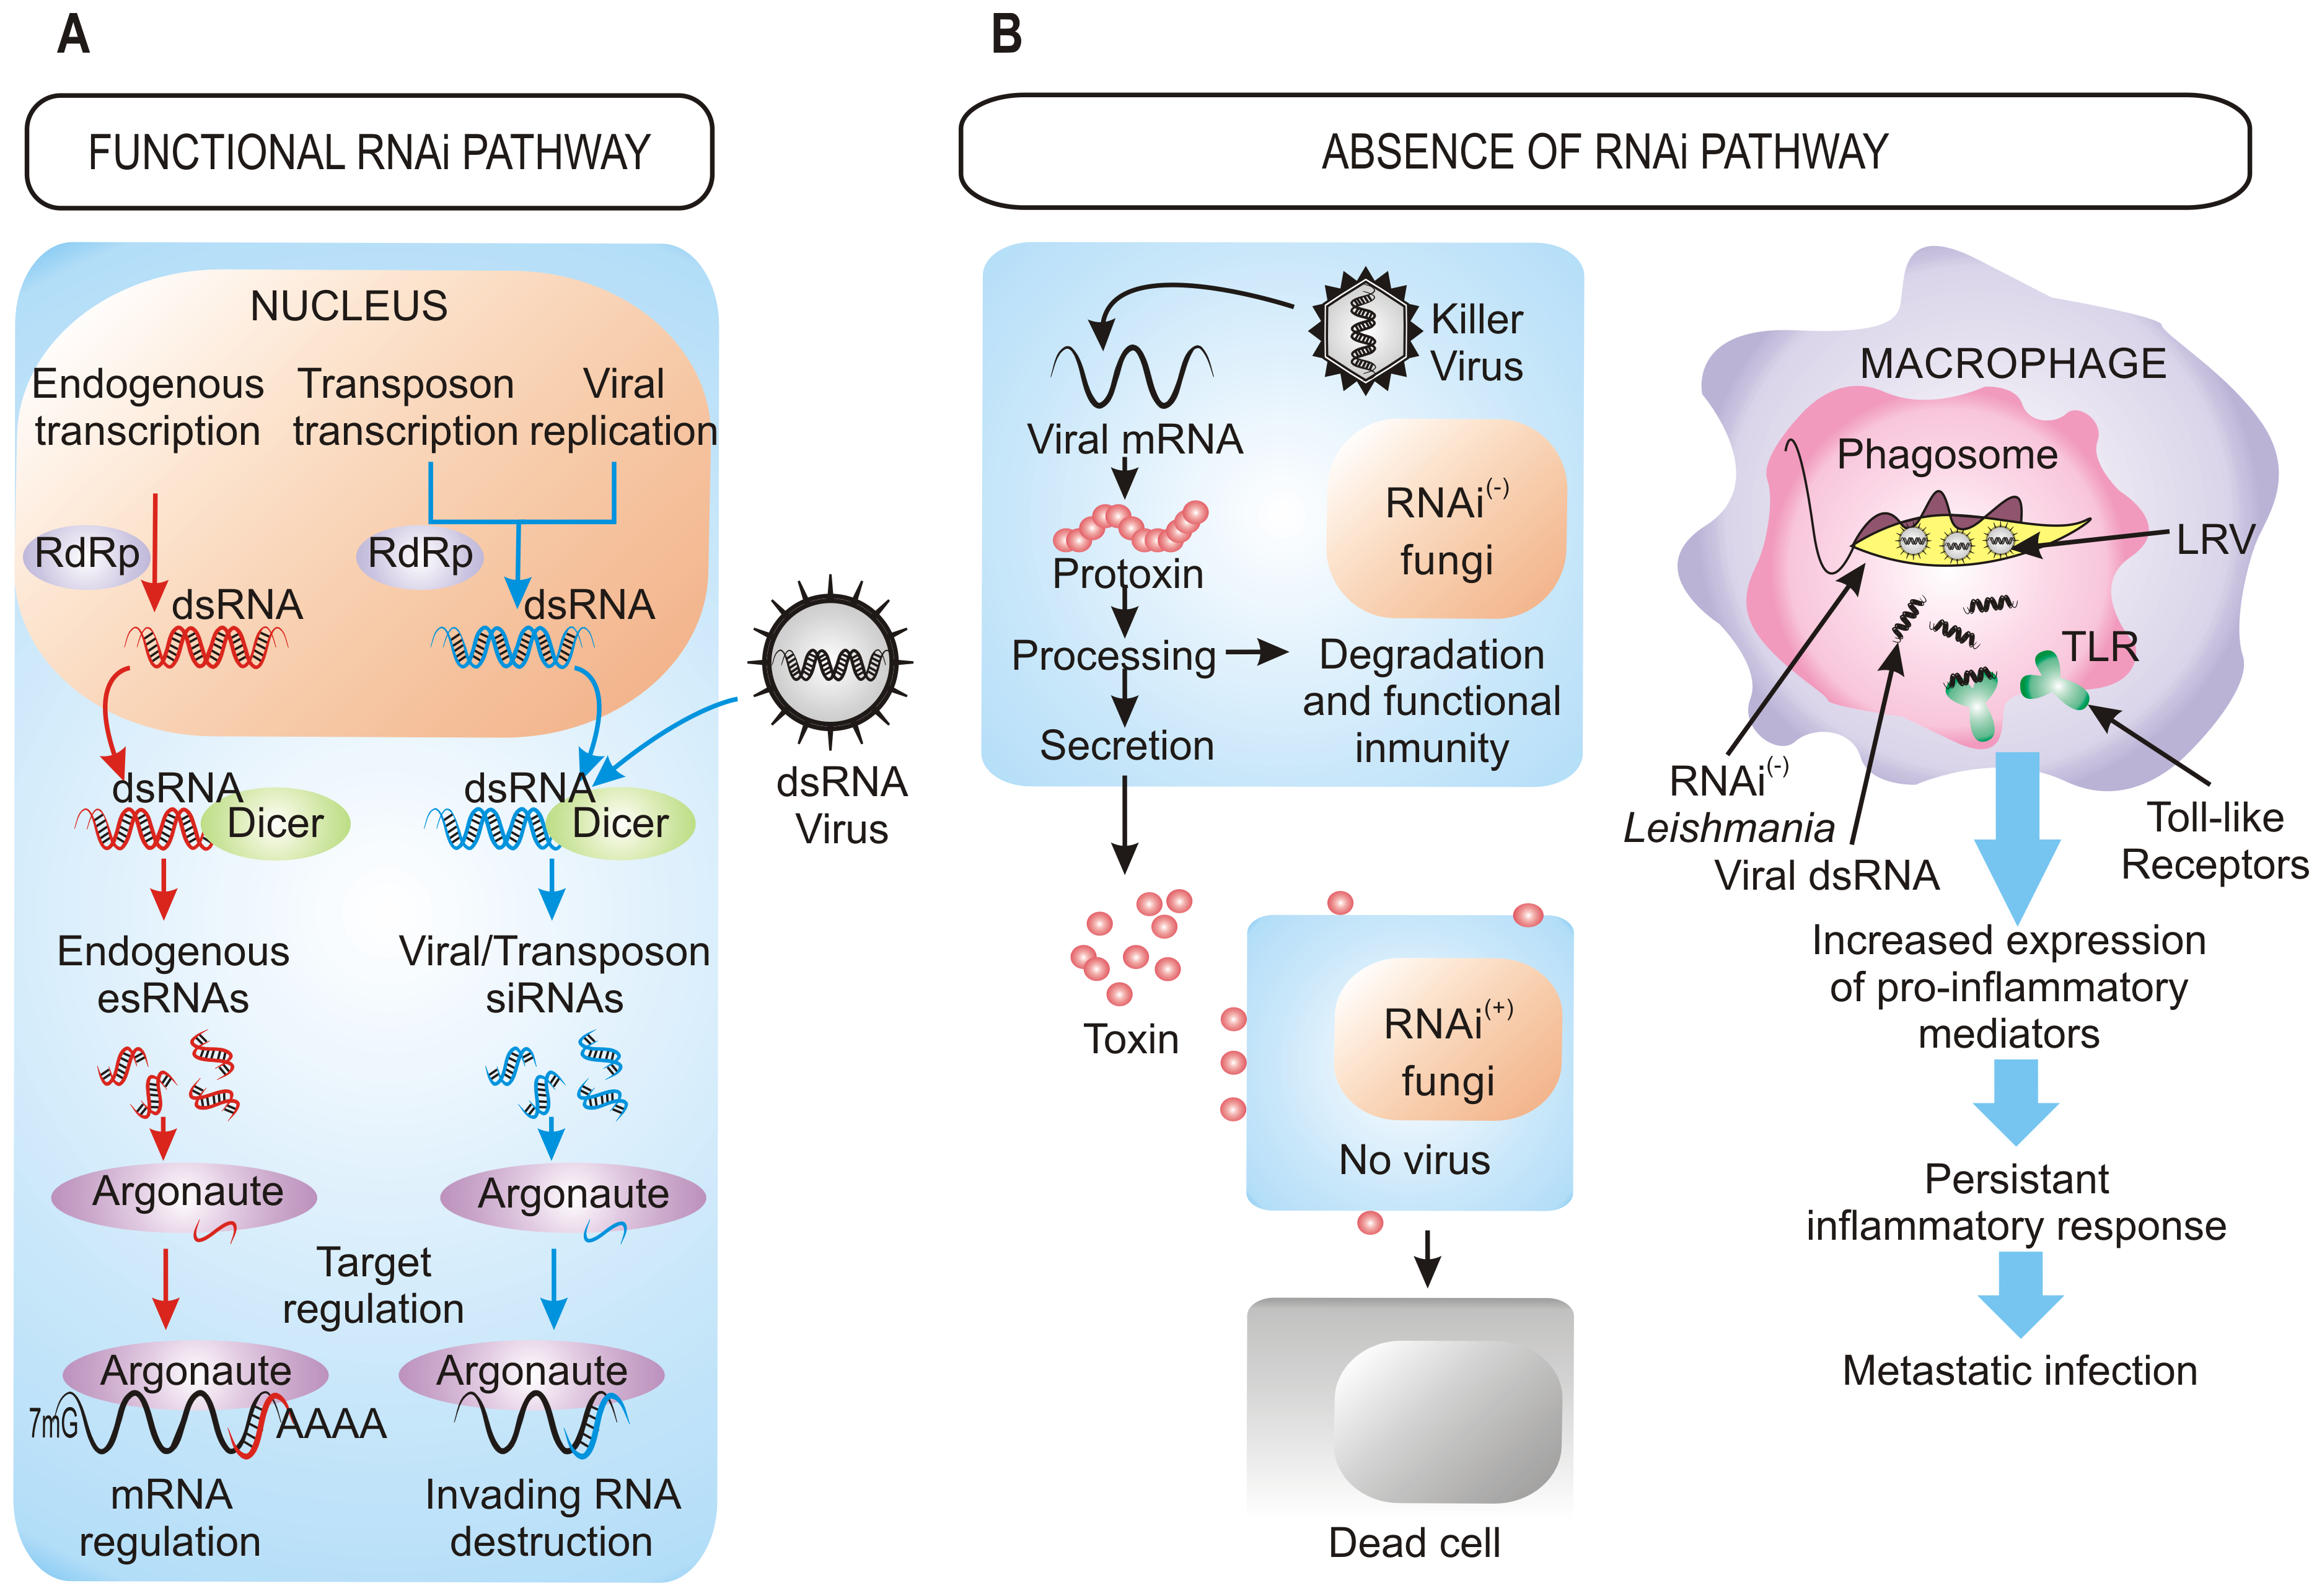 Benefits of the retention/loss of the RNAi pathway.